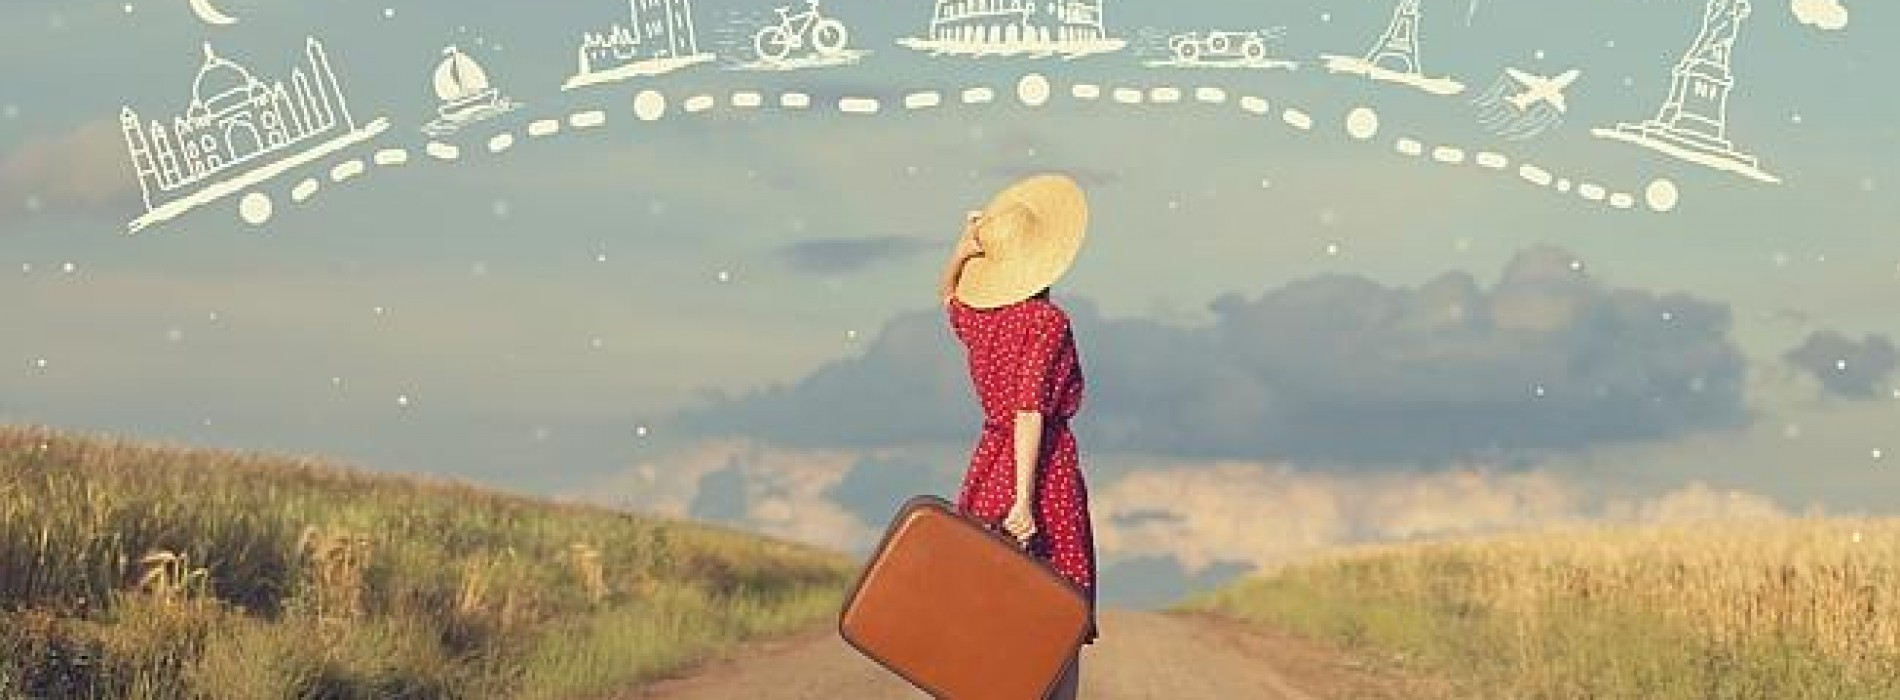 Destinations Calling for Single Women Travellers